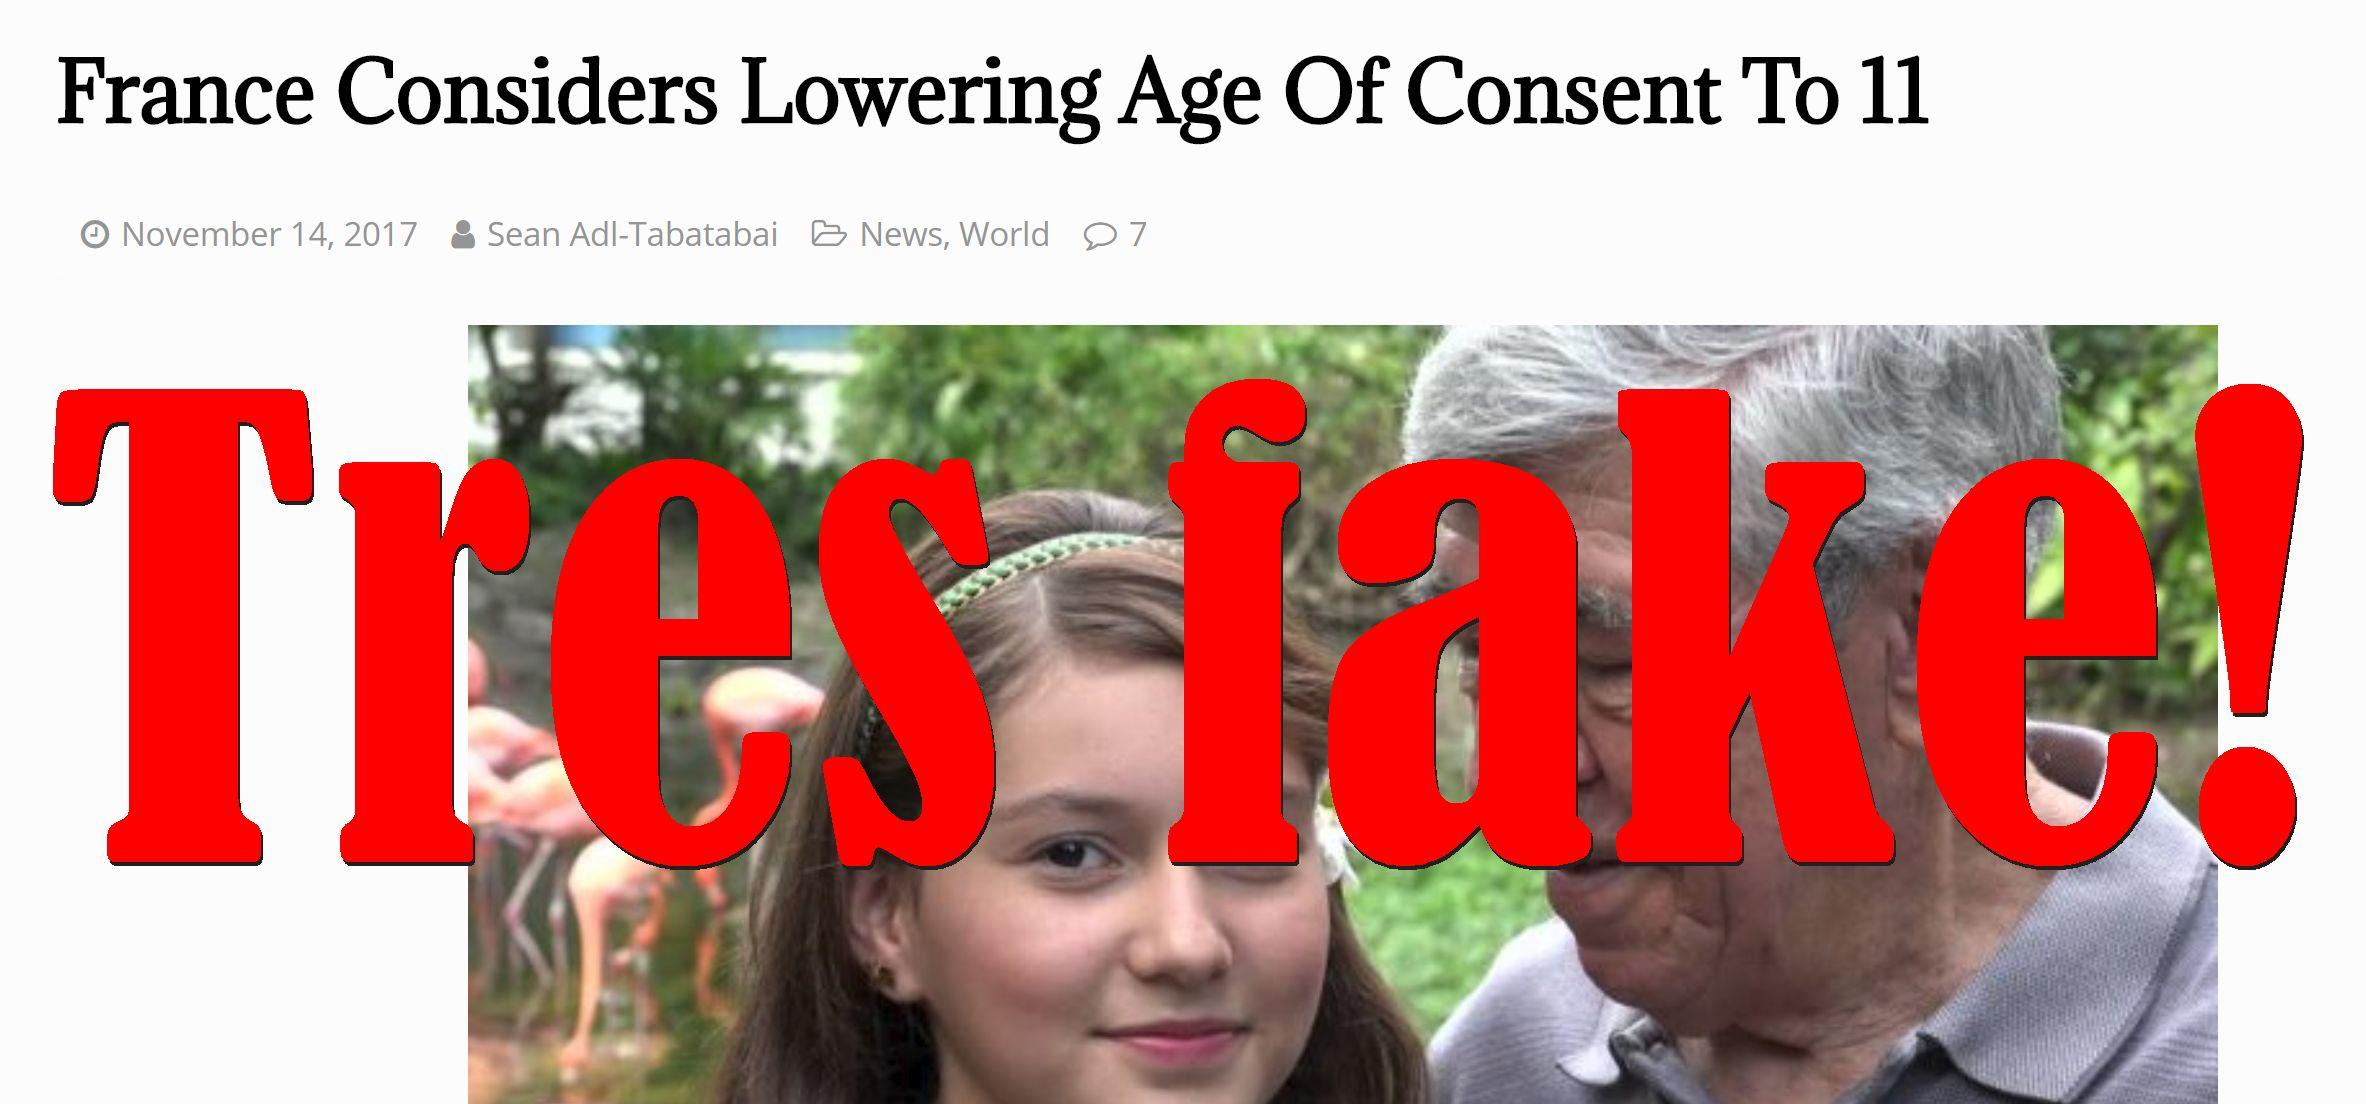 Fake News: France NOT Considering Lowering Age Of Consent To 11